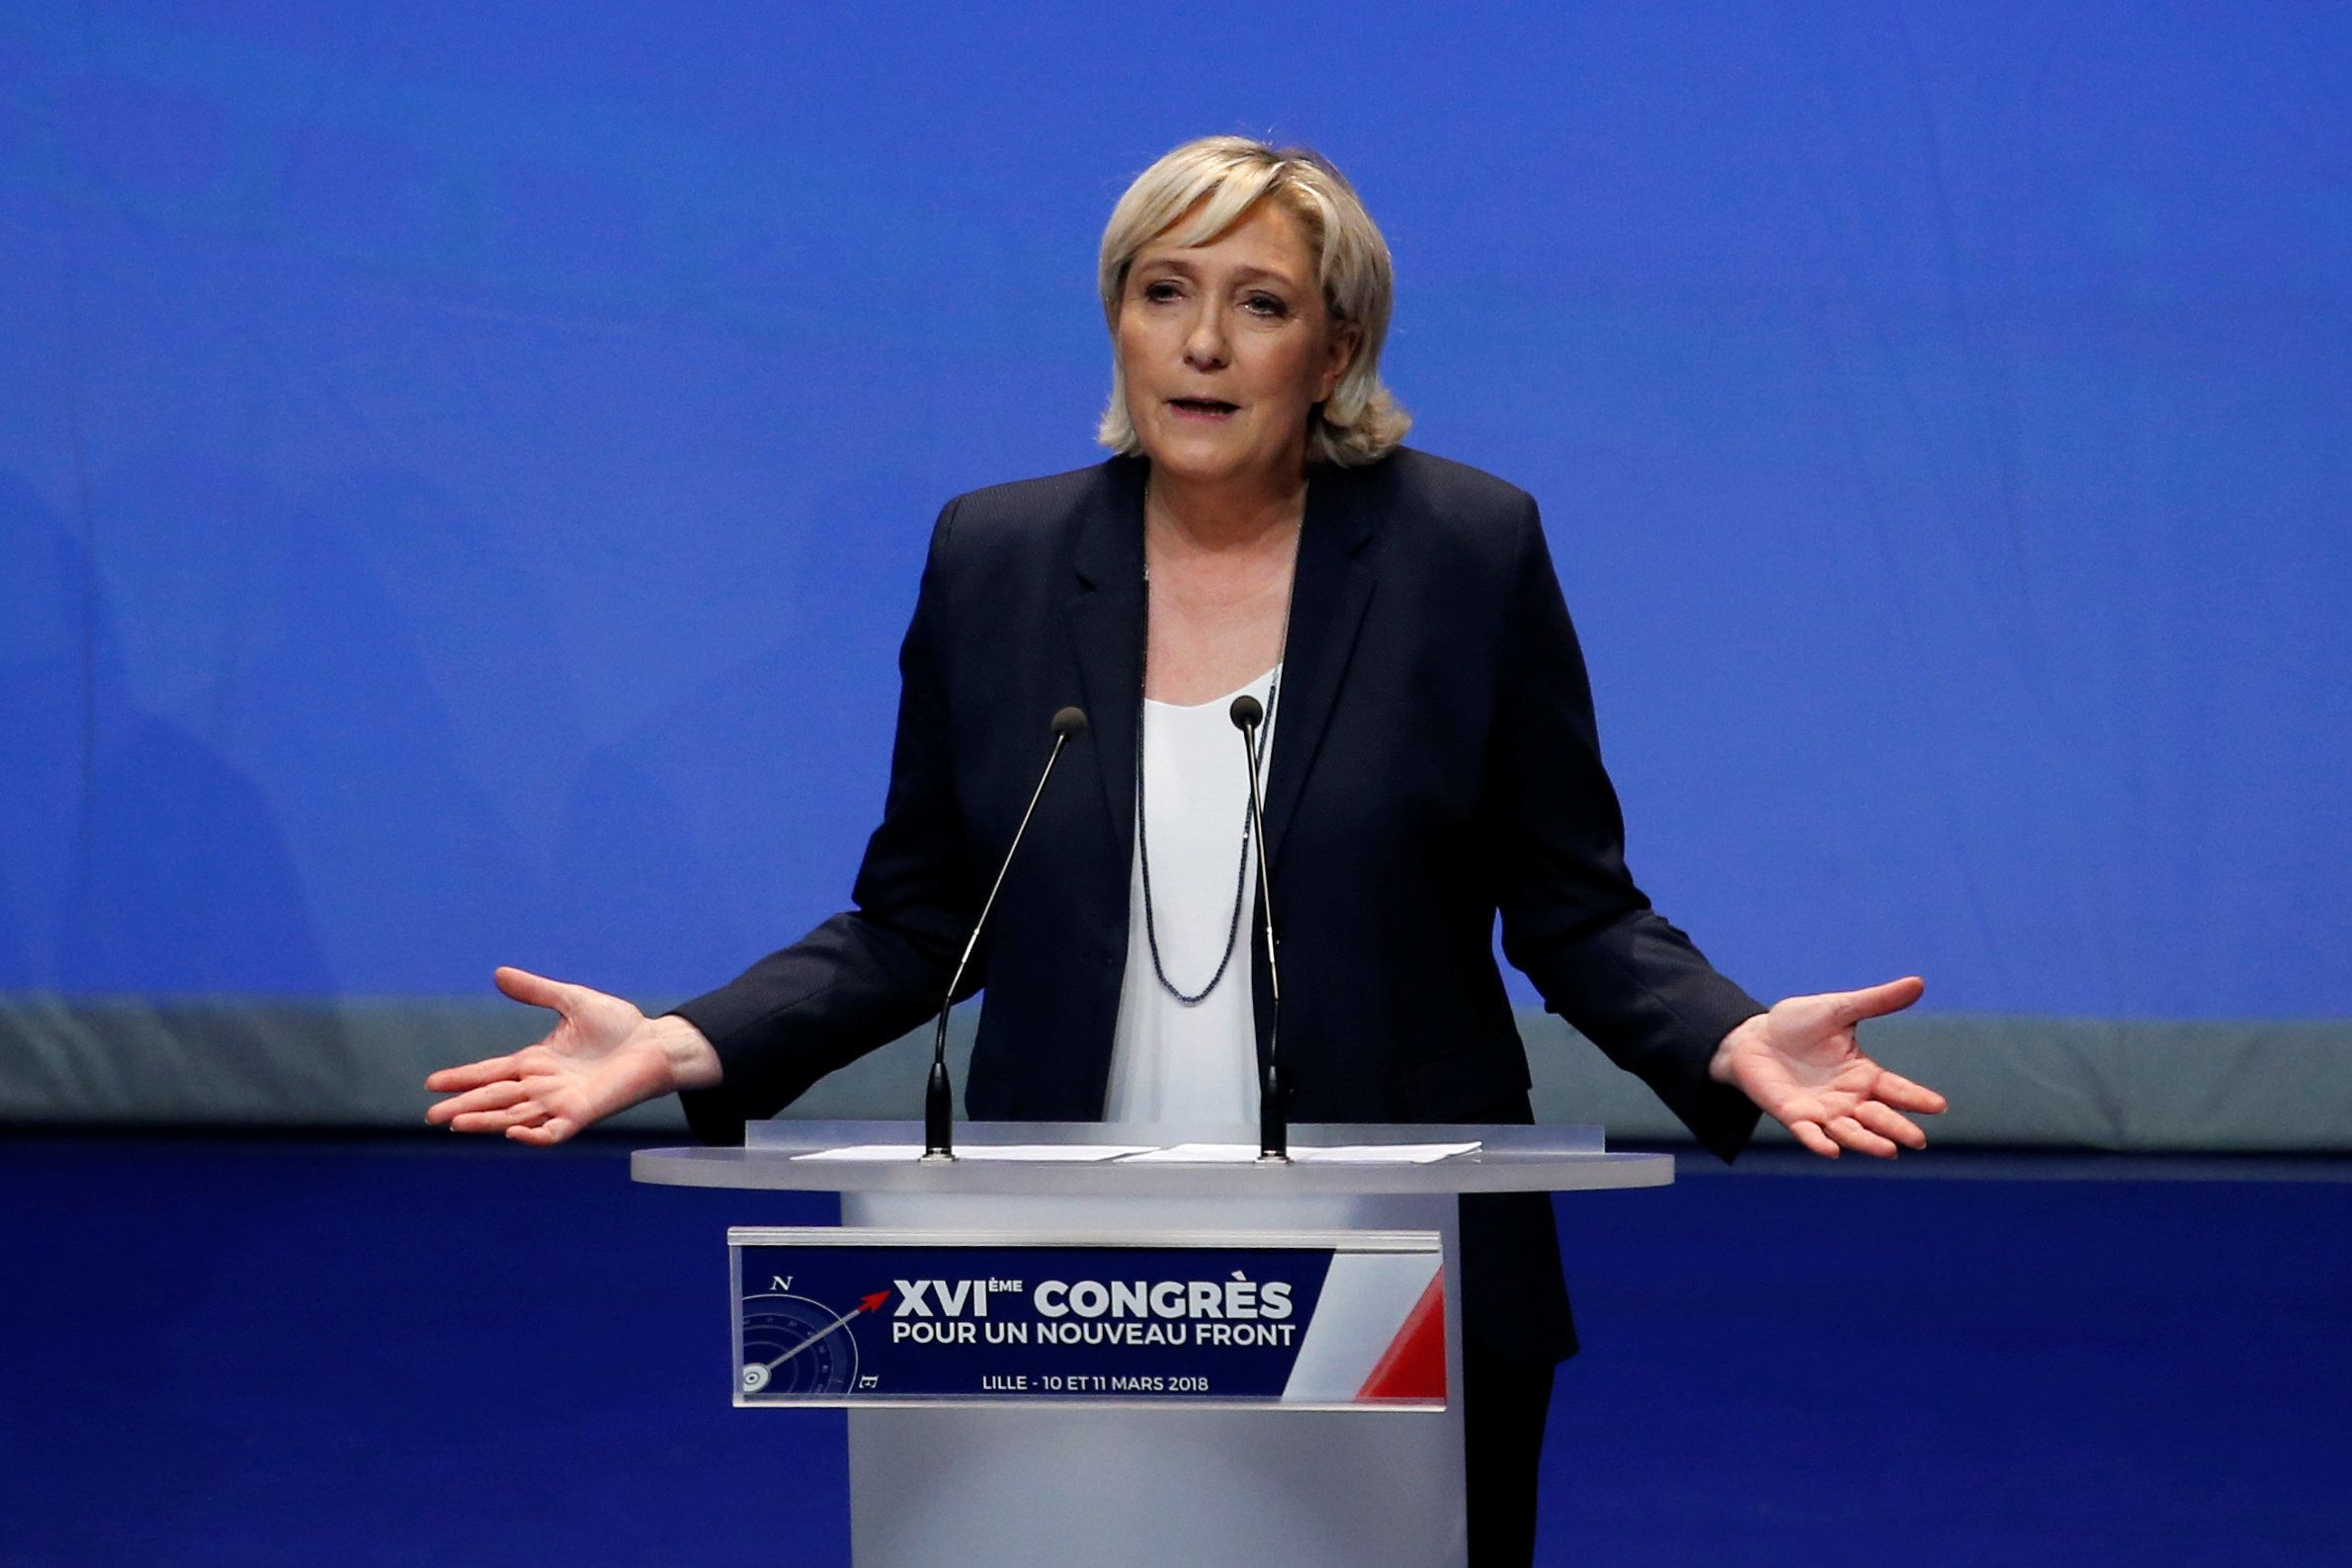 Marine Le Pen's choice of a new name for the party she leads now goes to a vote of its members.